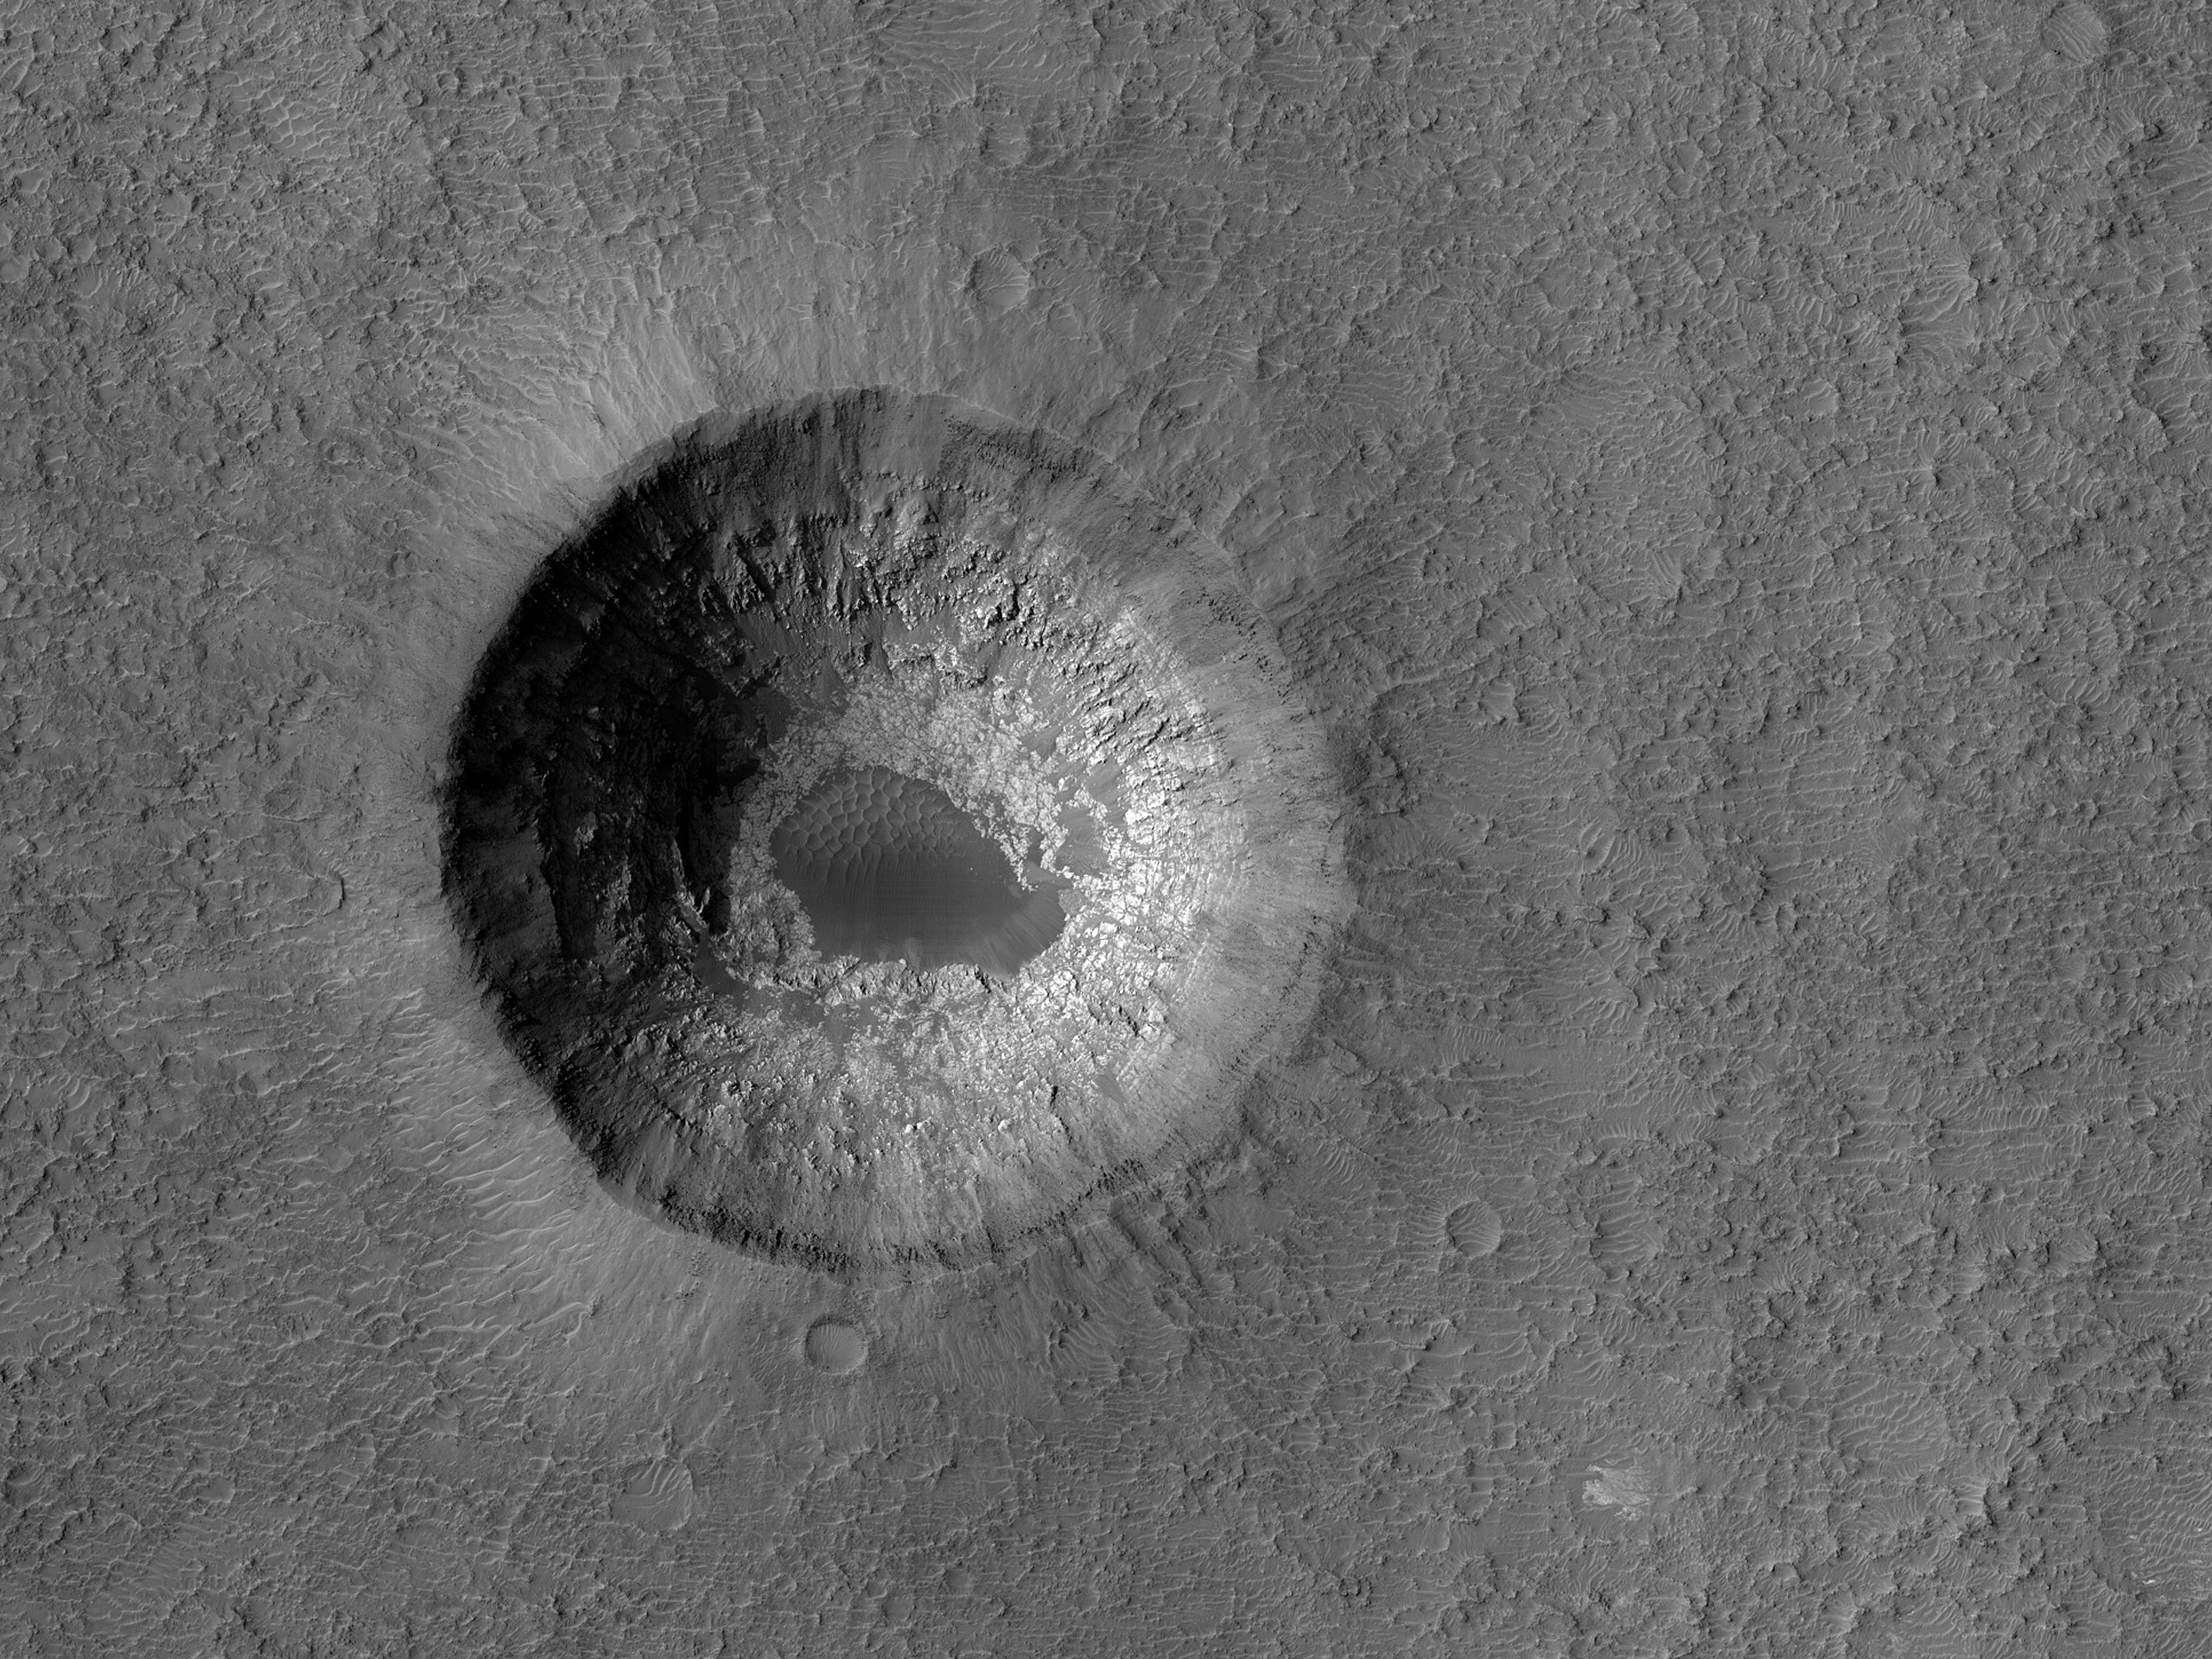 Here's Looking at You, Mars